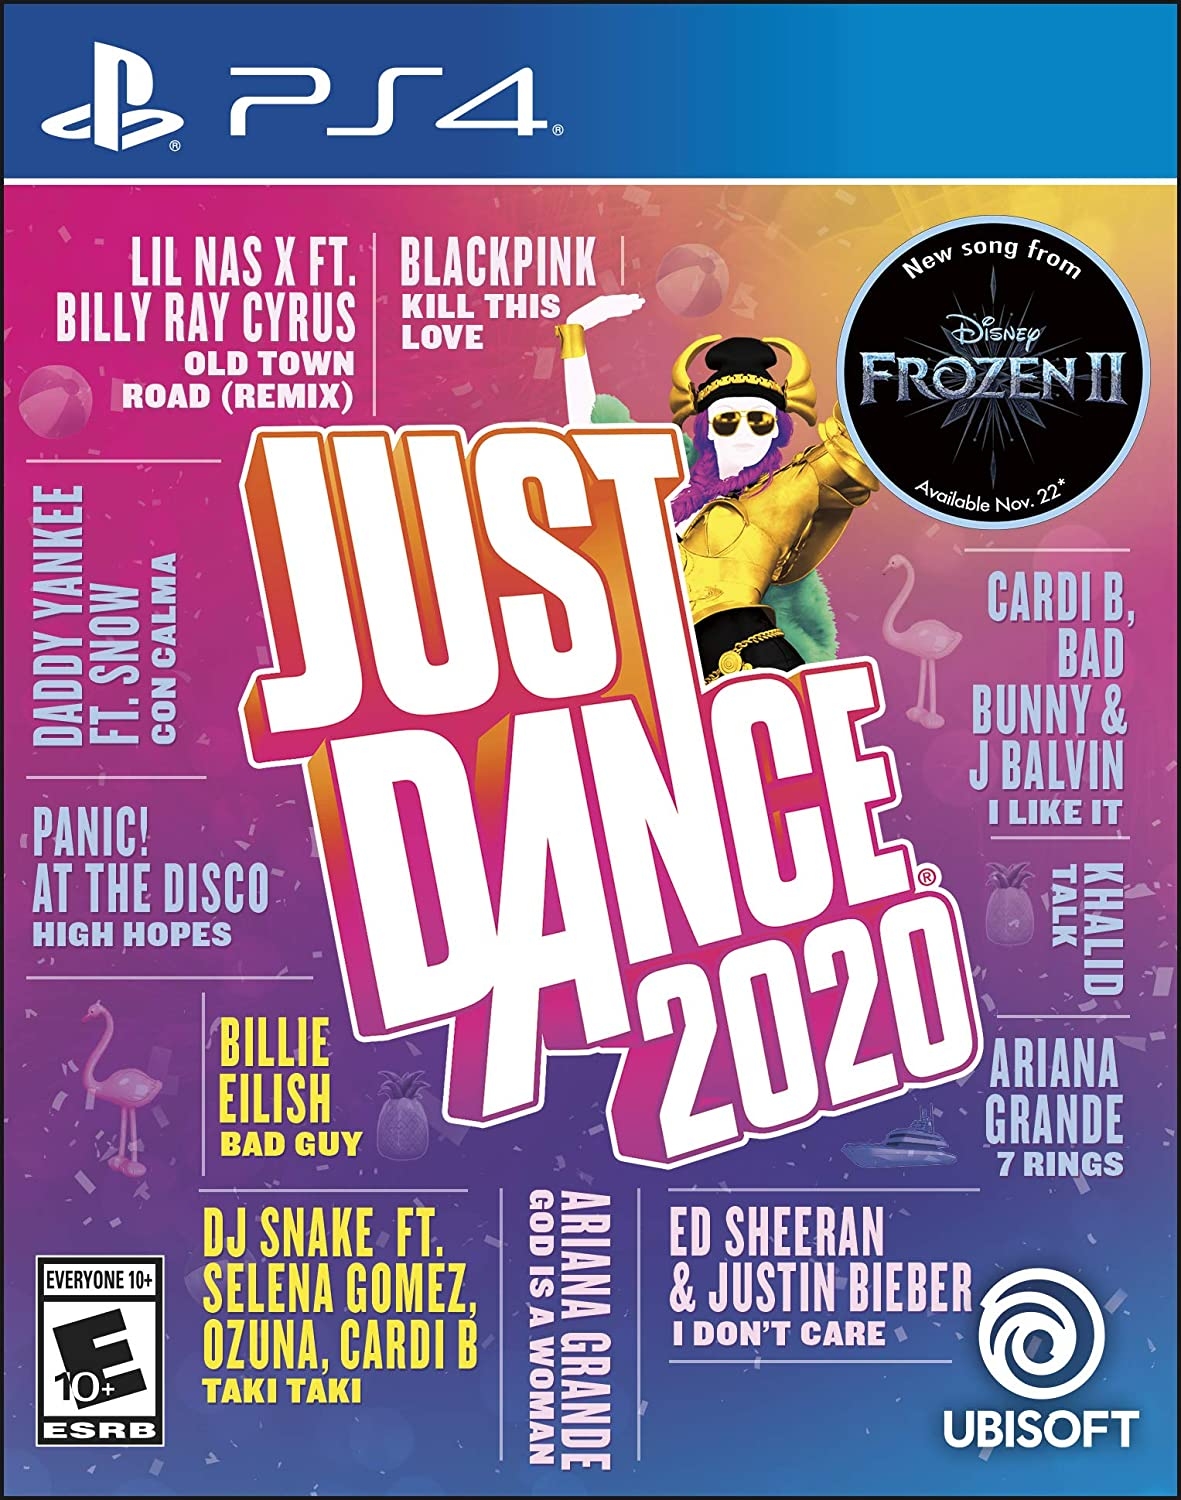 Playstation Free Games February 2020.Amazon Com Just Dance 2020 Playstation 4 Standard Edition